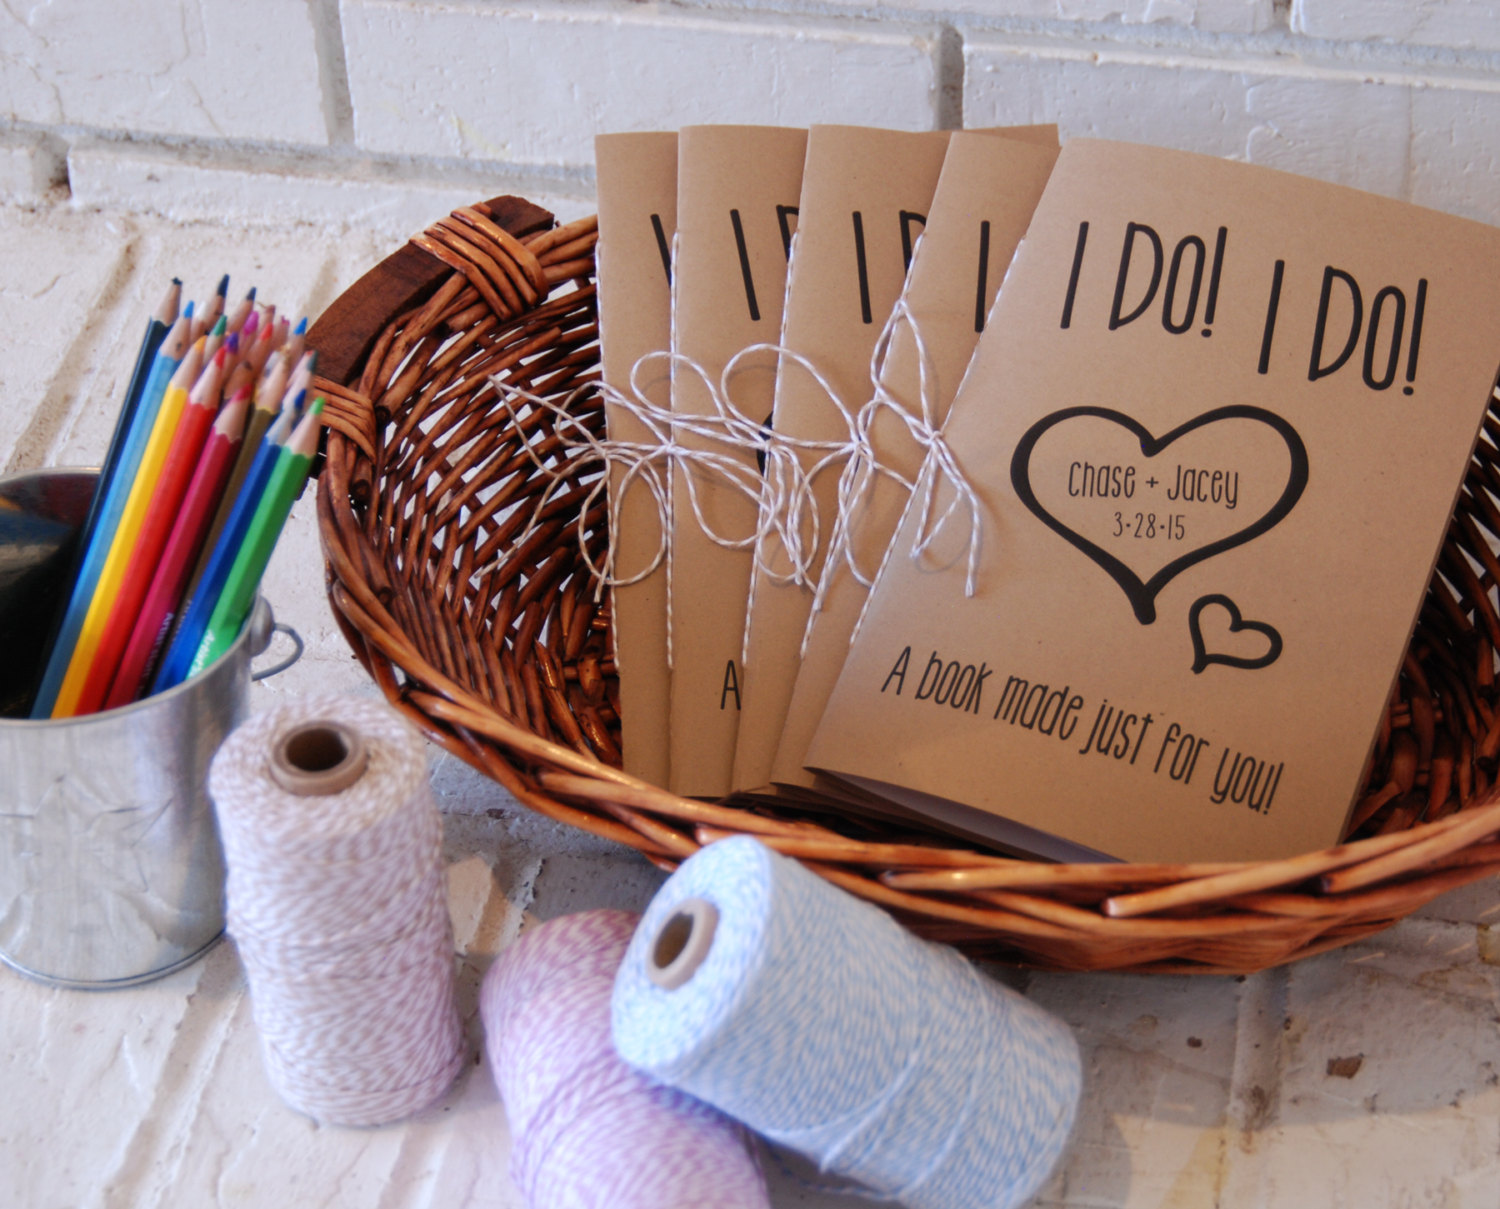 Kids Wedding Gifts: Kid Friendly Wedding Ideas